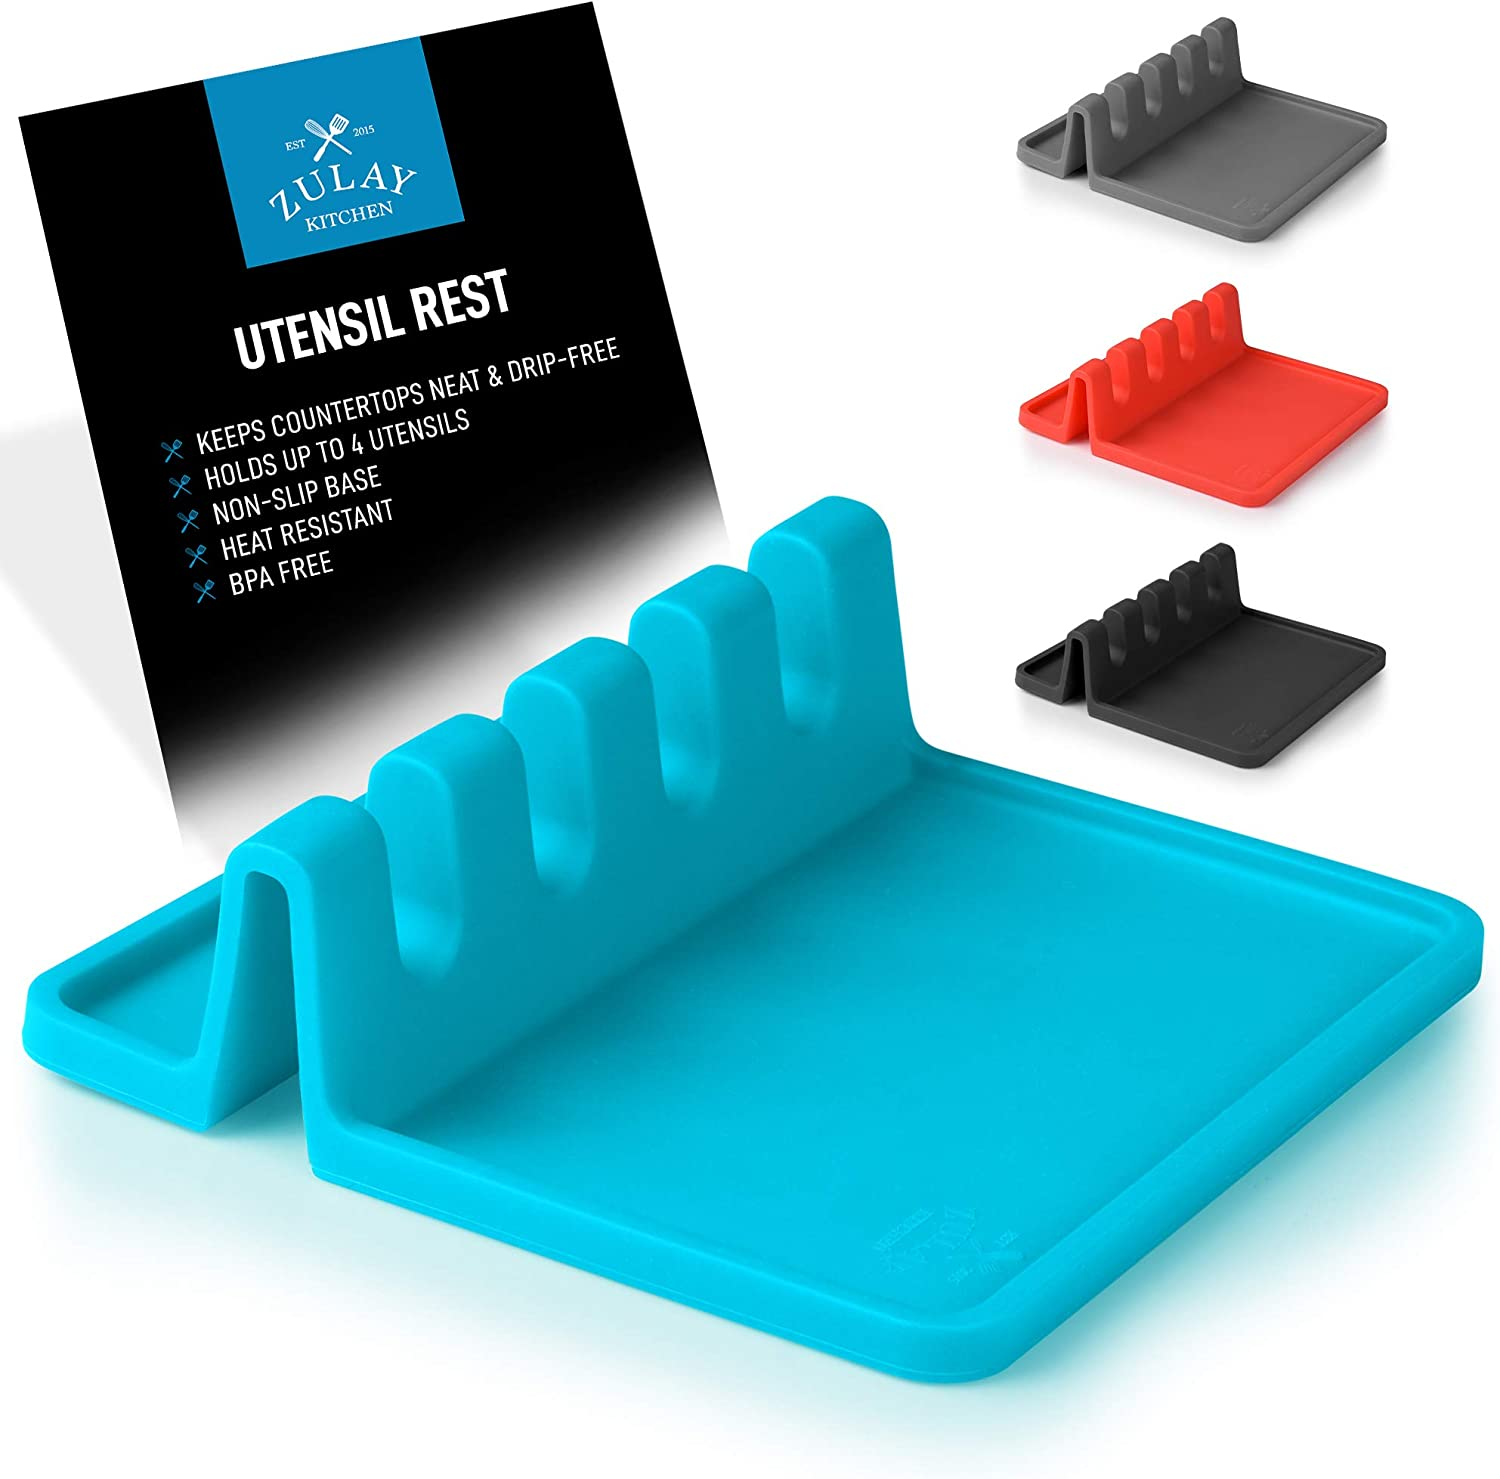 Silicone Utensil Rest with Drip Pad for Multiple Utensils, Heat-Resistant, BPA-Free Spoon Rest & Spoon Holder for Stove Top, Kitchen Utensil Holder for Spoons, Ladles, Tongs & More - by Zulay (Blue)